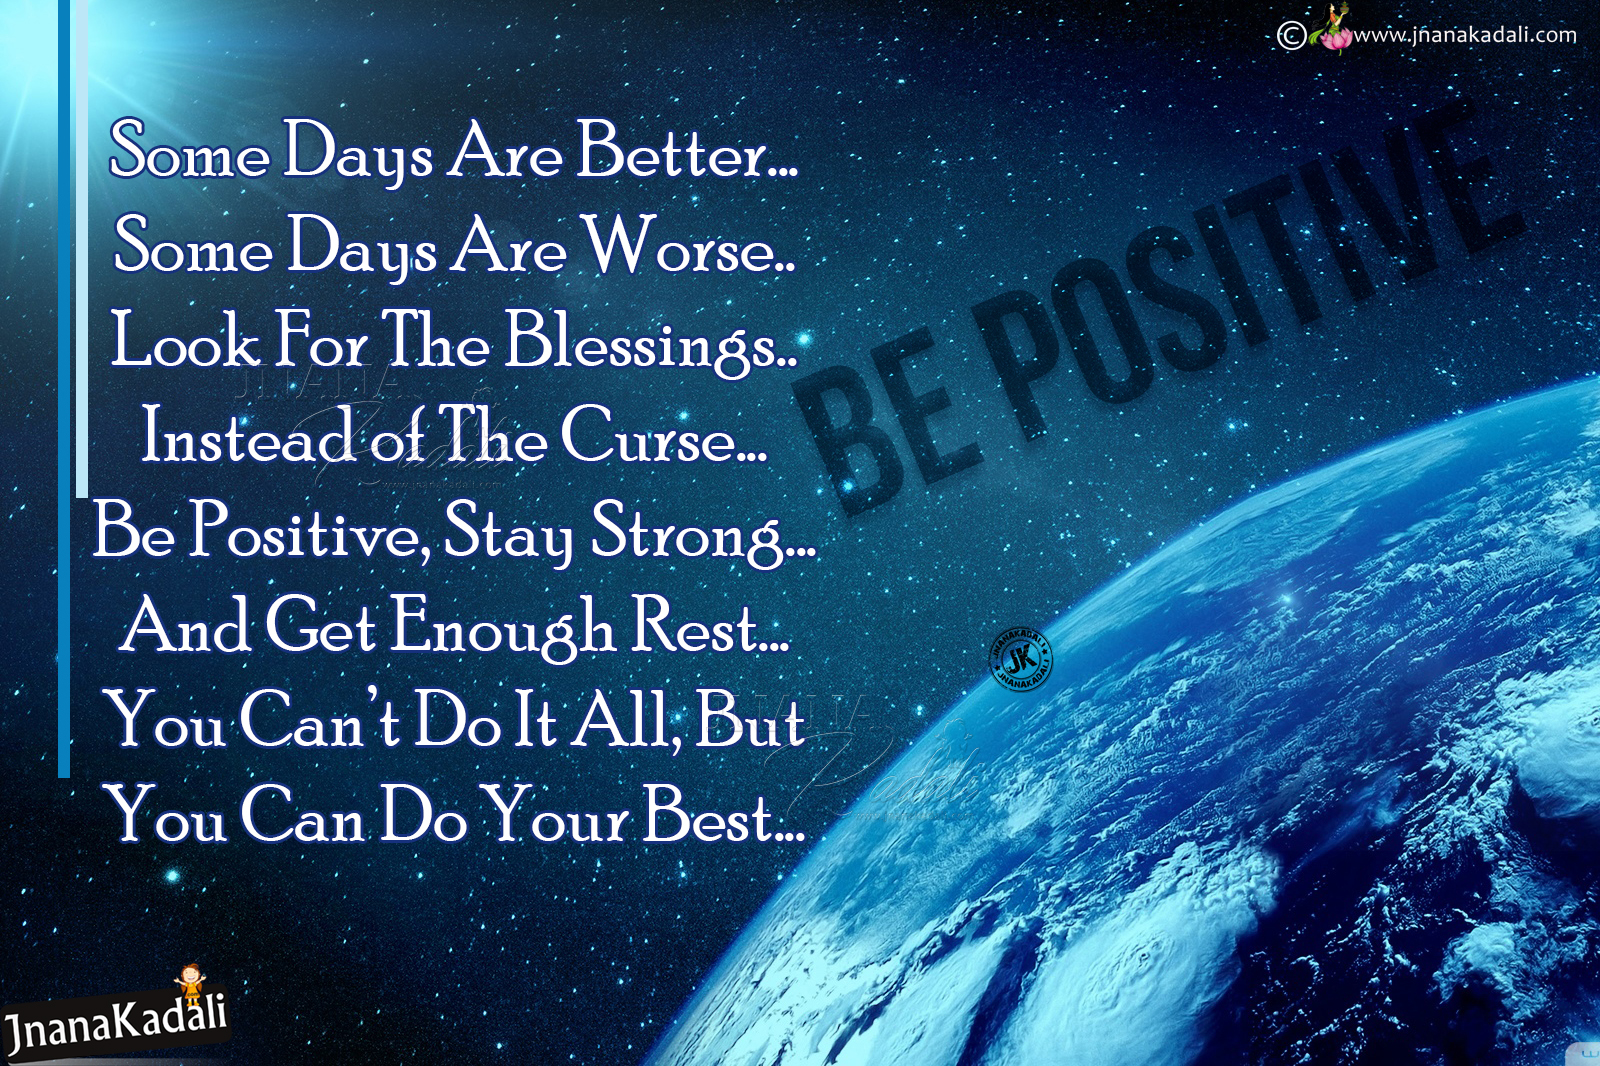 Positive Thinking Live Success Quotes In English-be - Motivational Quotes Wallpapers Hd 1080p - HD Wallpaper